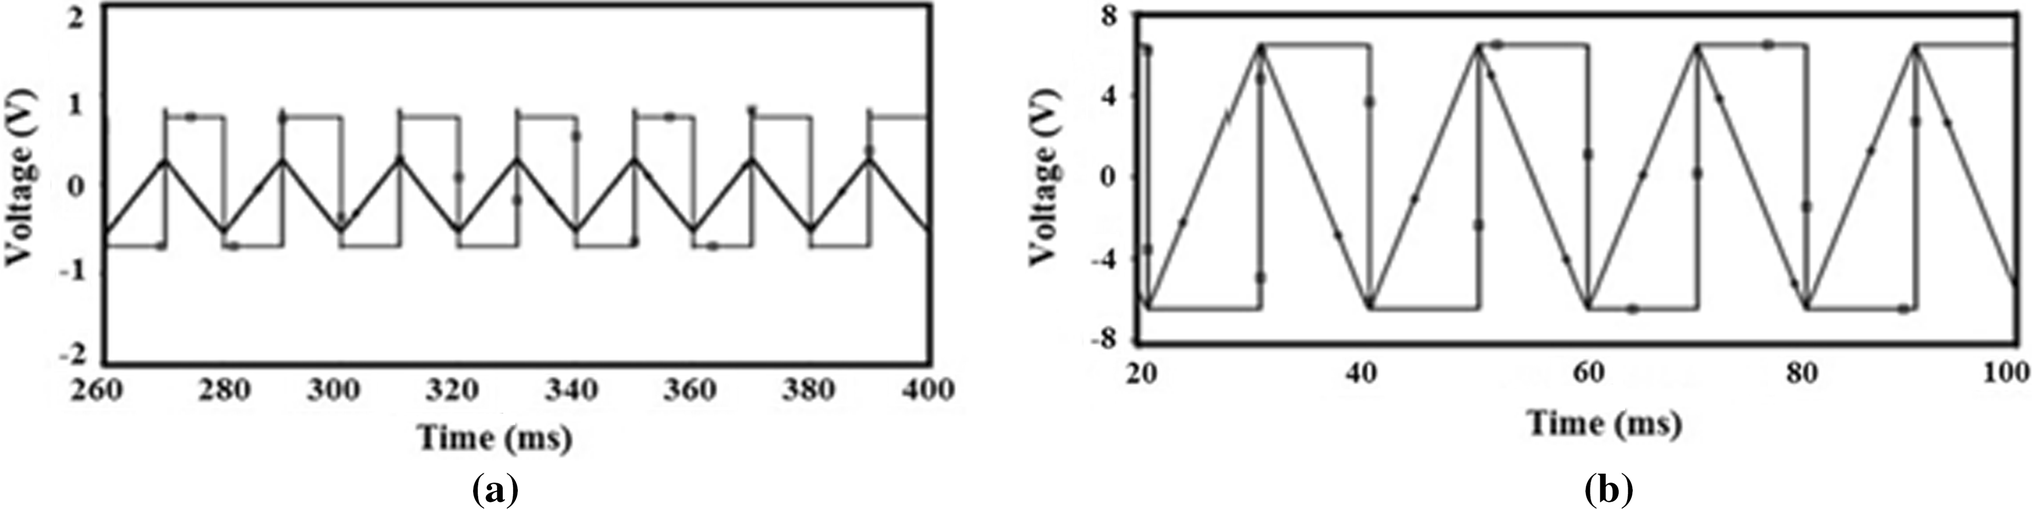 A Novel Schmitt Trigger And Its Application Using Single Four Comparator Circuit With Hysteresis Characteristics Open Image In New Window